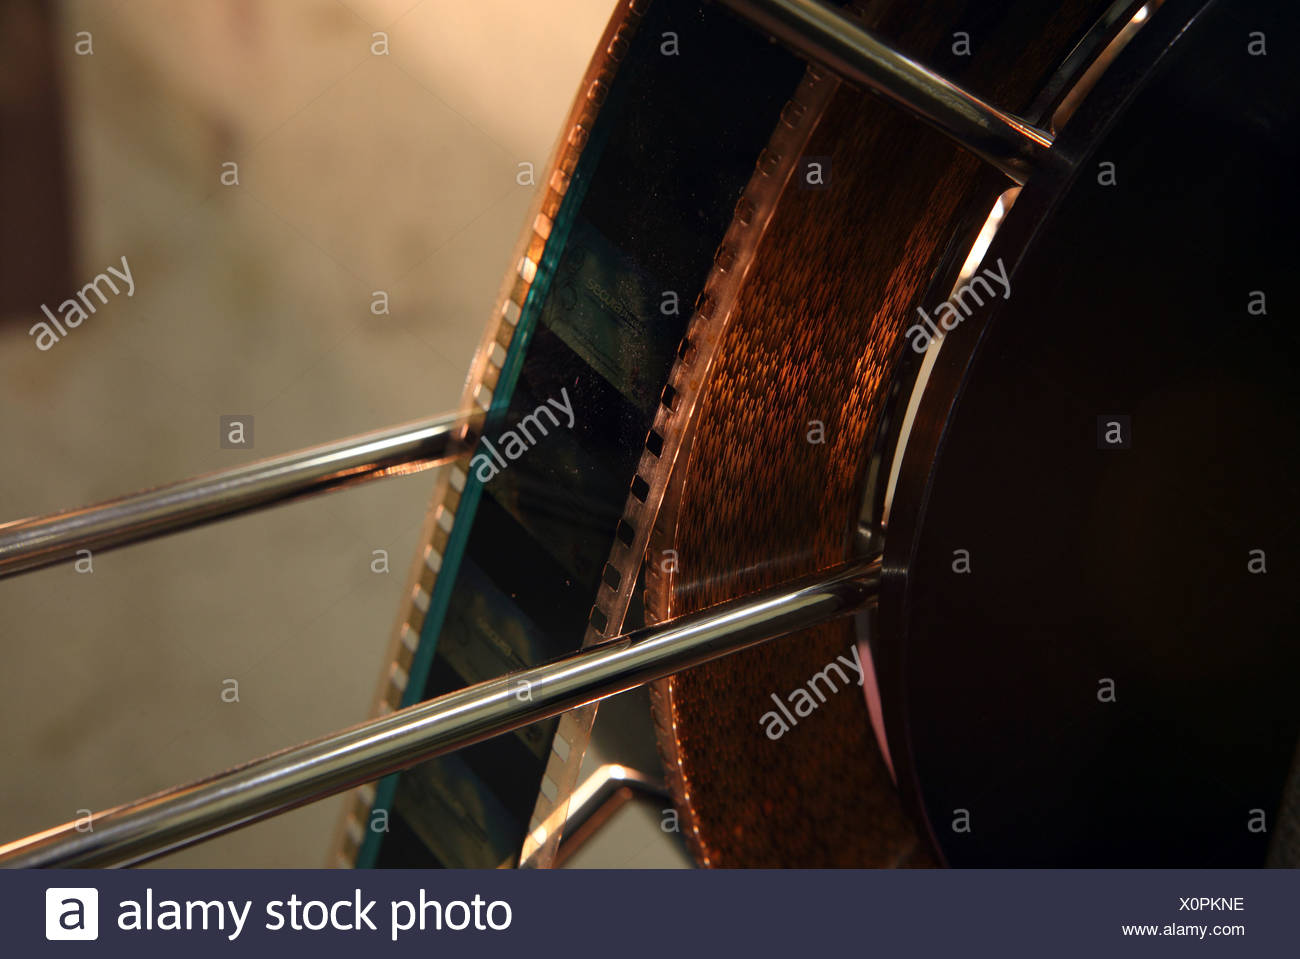 Berlin, Germany, on a roll of film coil - Stock Image